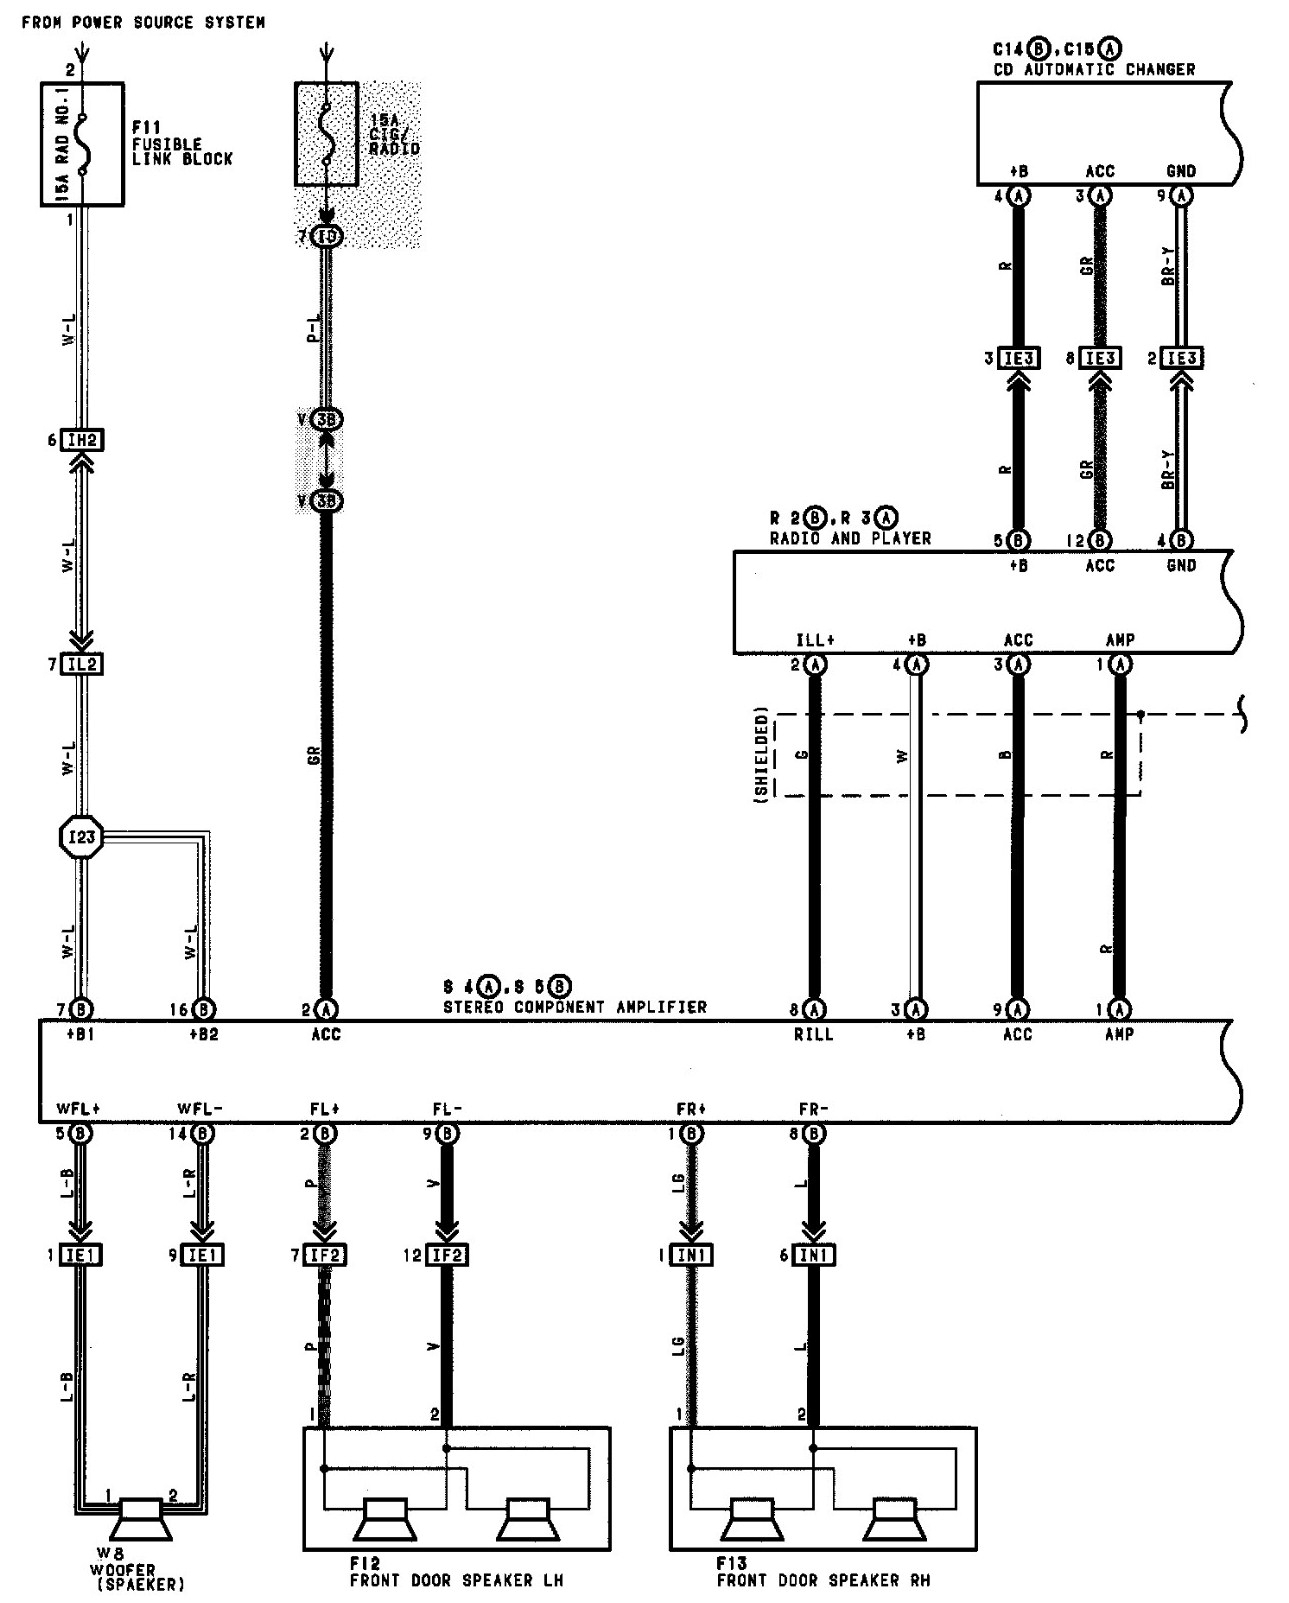 Toyota Sequoia Wiring Diagram from i1.wp.com